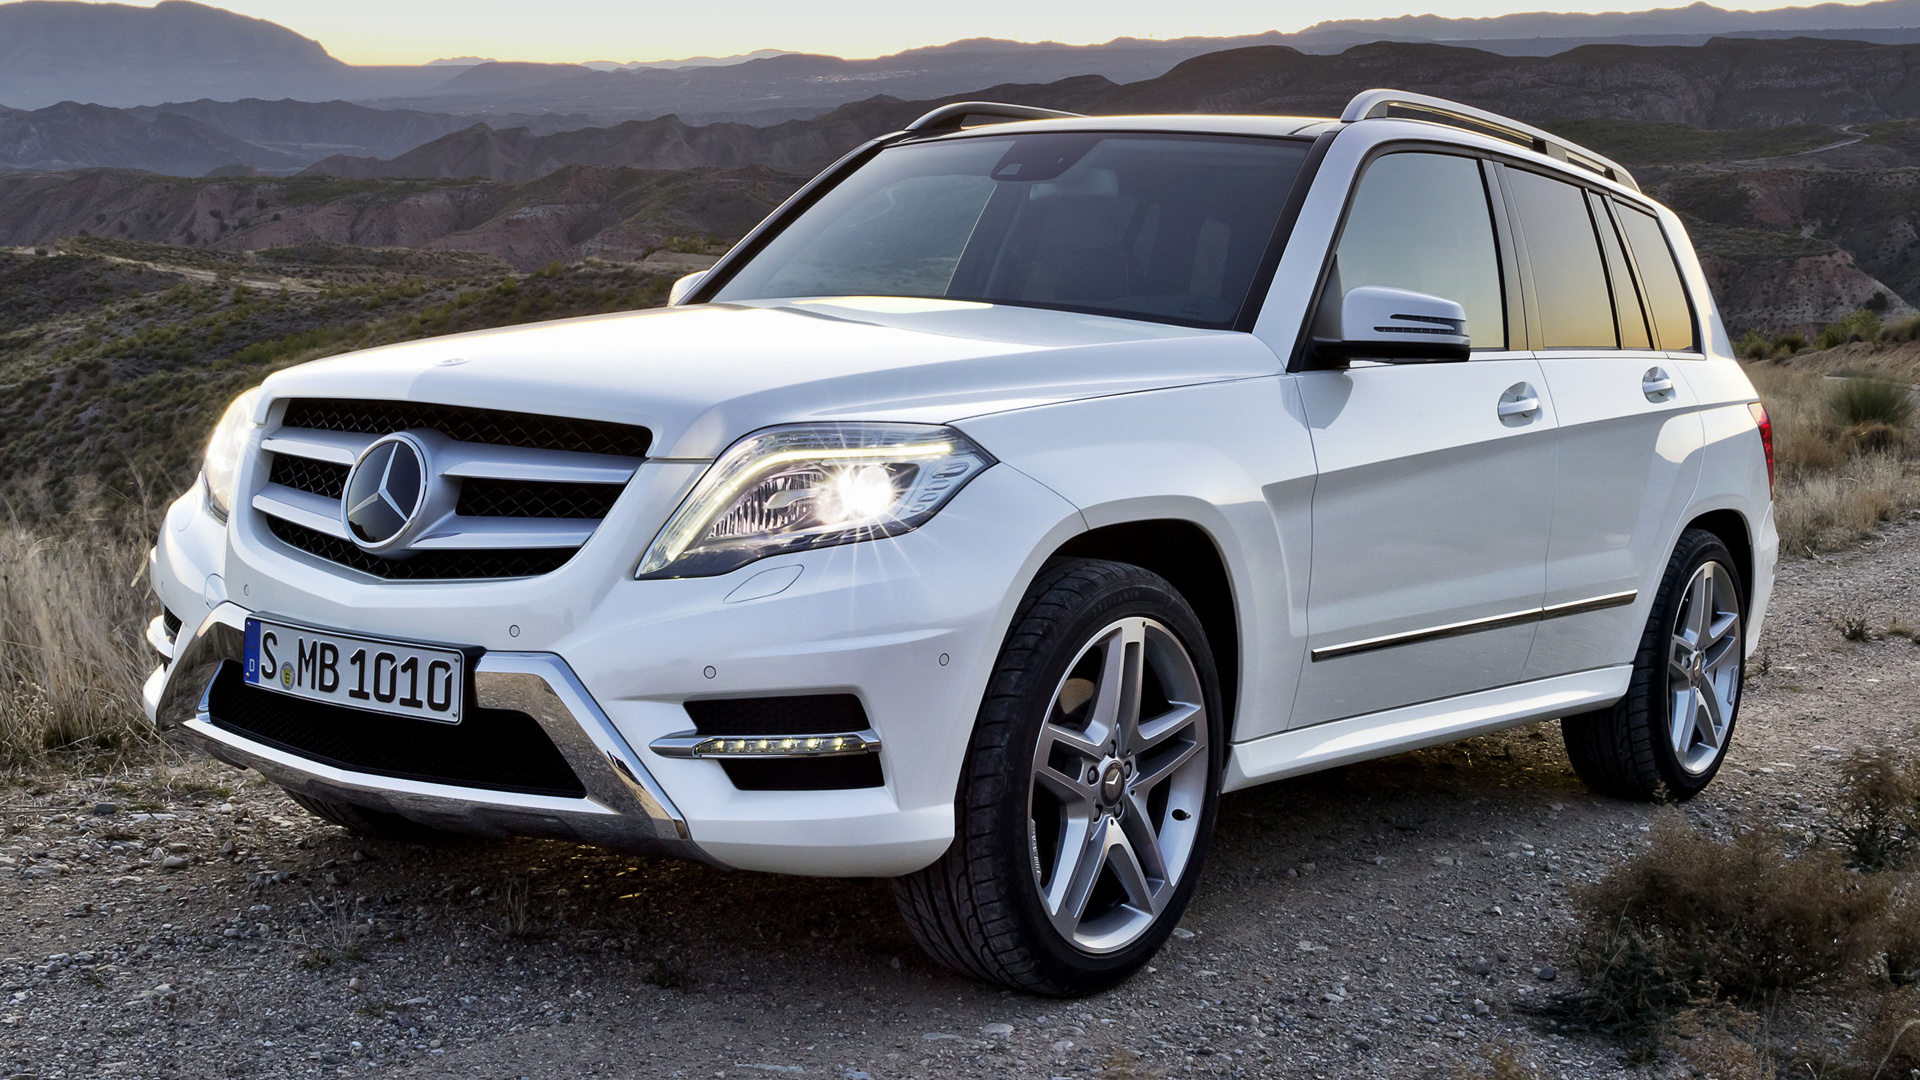 mercedes benz glk class amg styling 2012 wallpapers and hd images car pixel. Black Bedroom Furniture Sets. Home Design Ideas